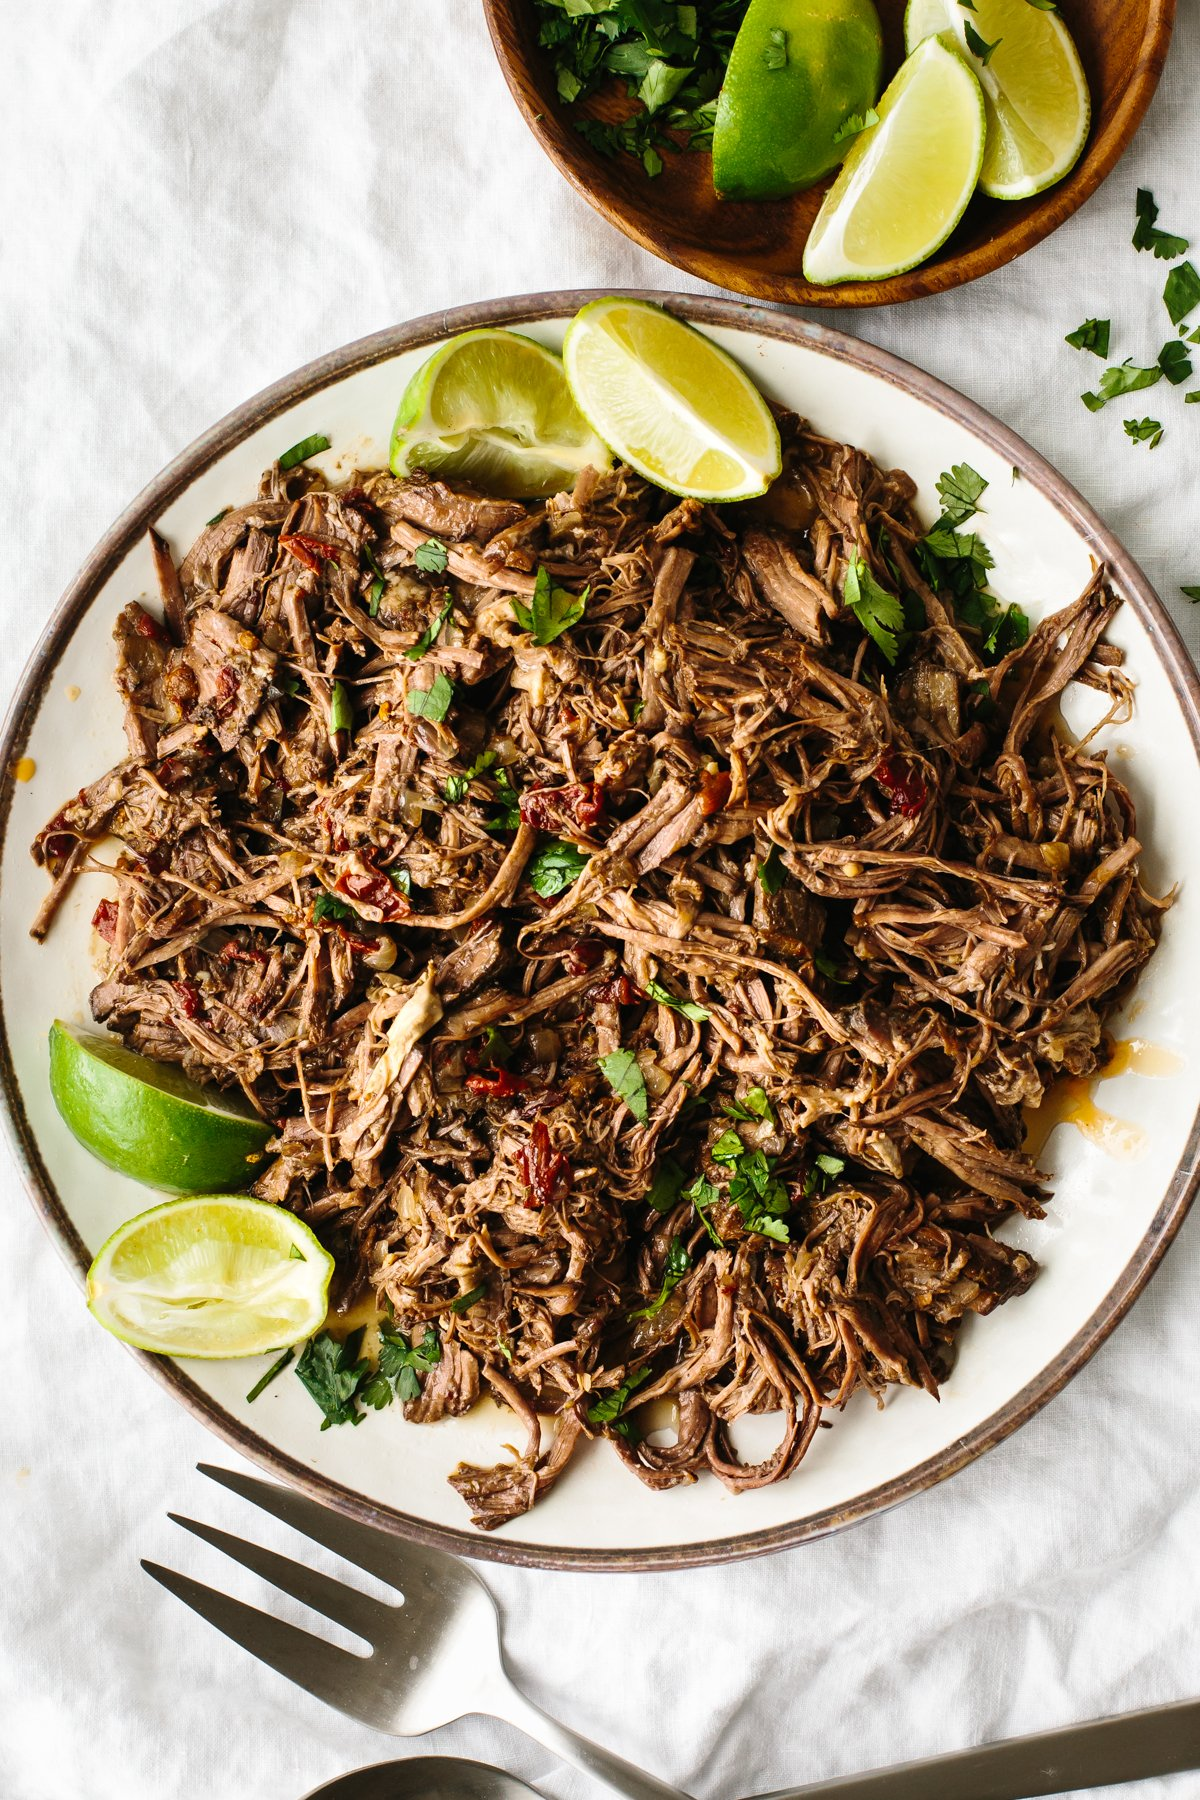 Beef barbacoa on a plate with lime wedges.